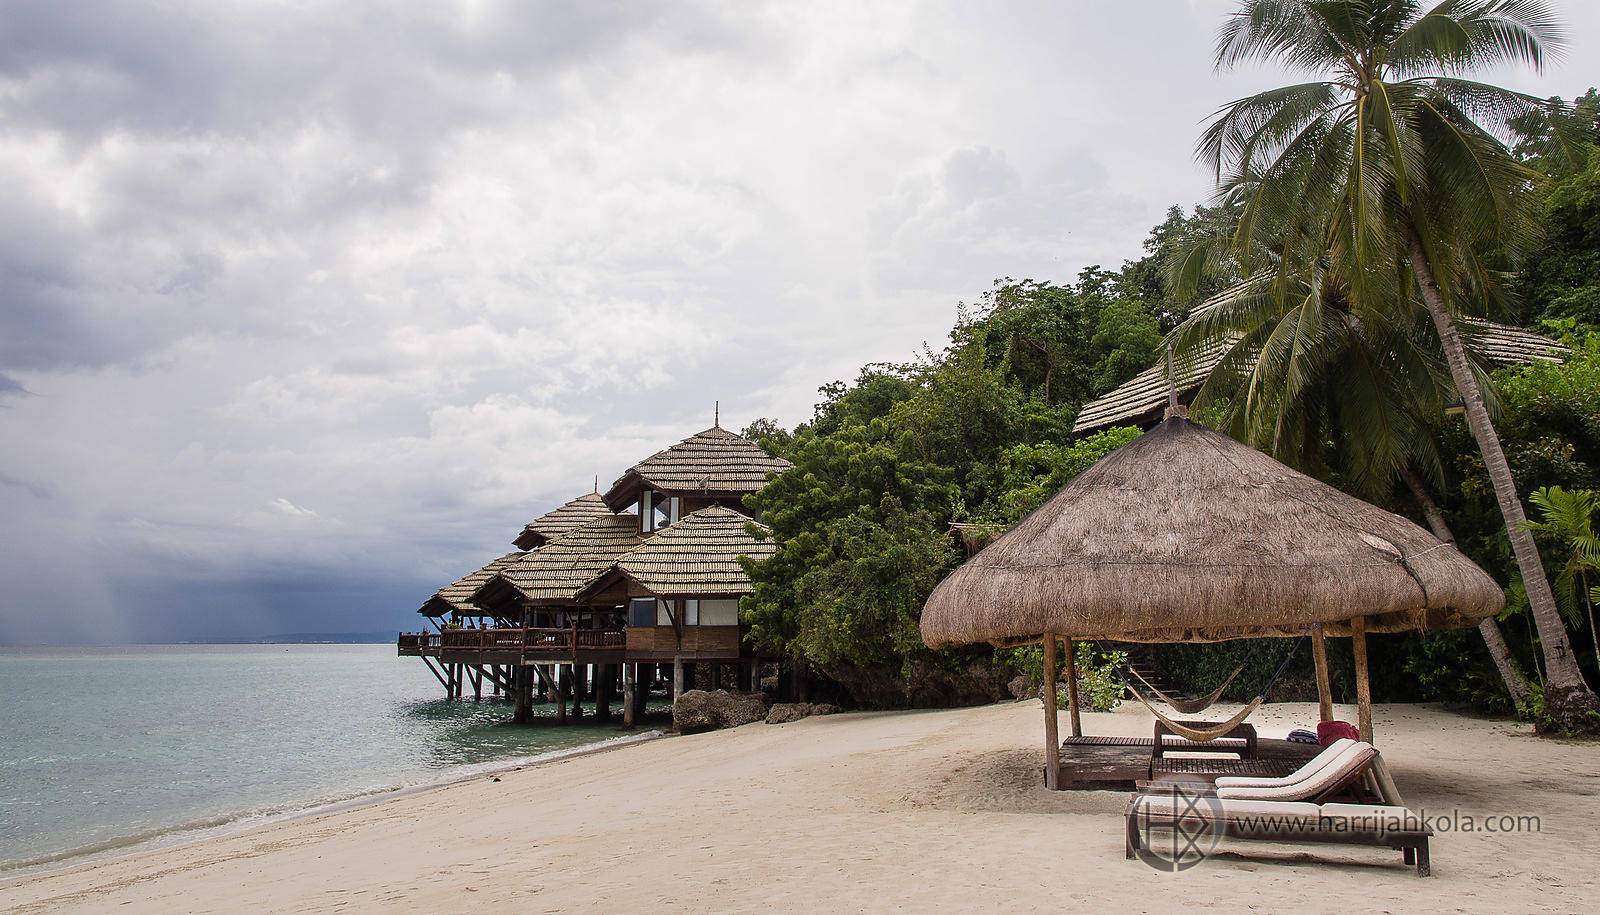 Philippines - Mindanao - Davao (Pearl Farm Resort - Relaxed Beach)